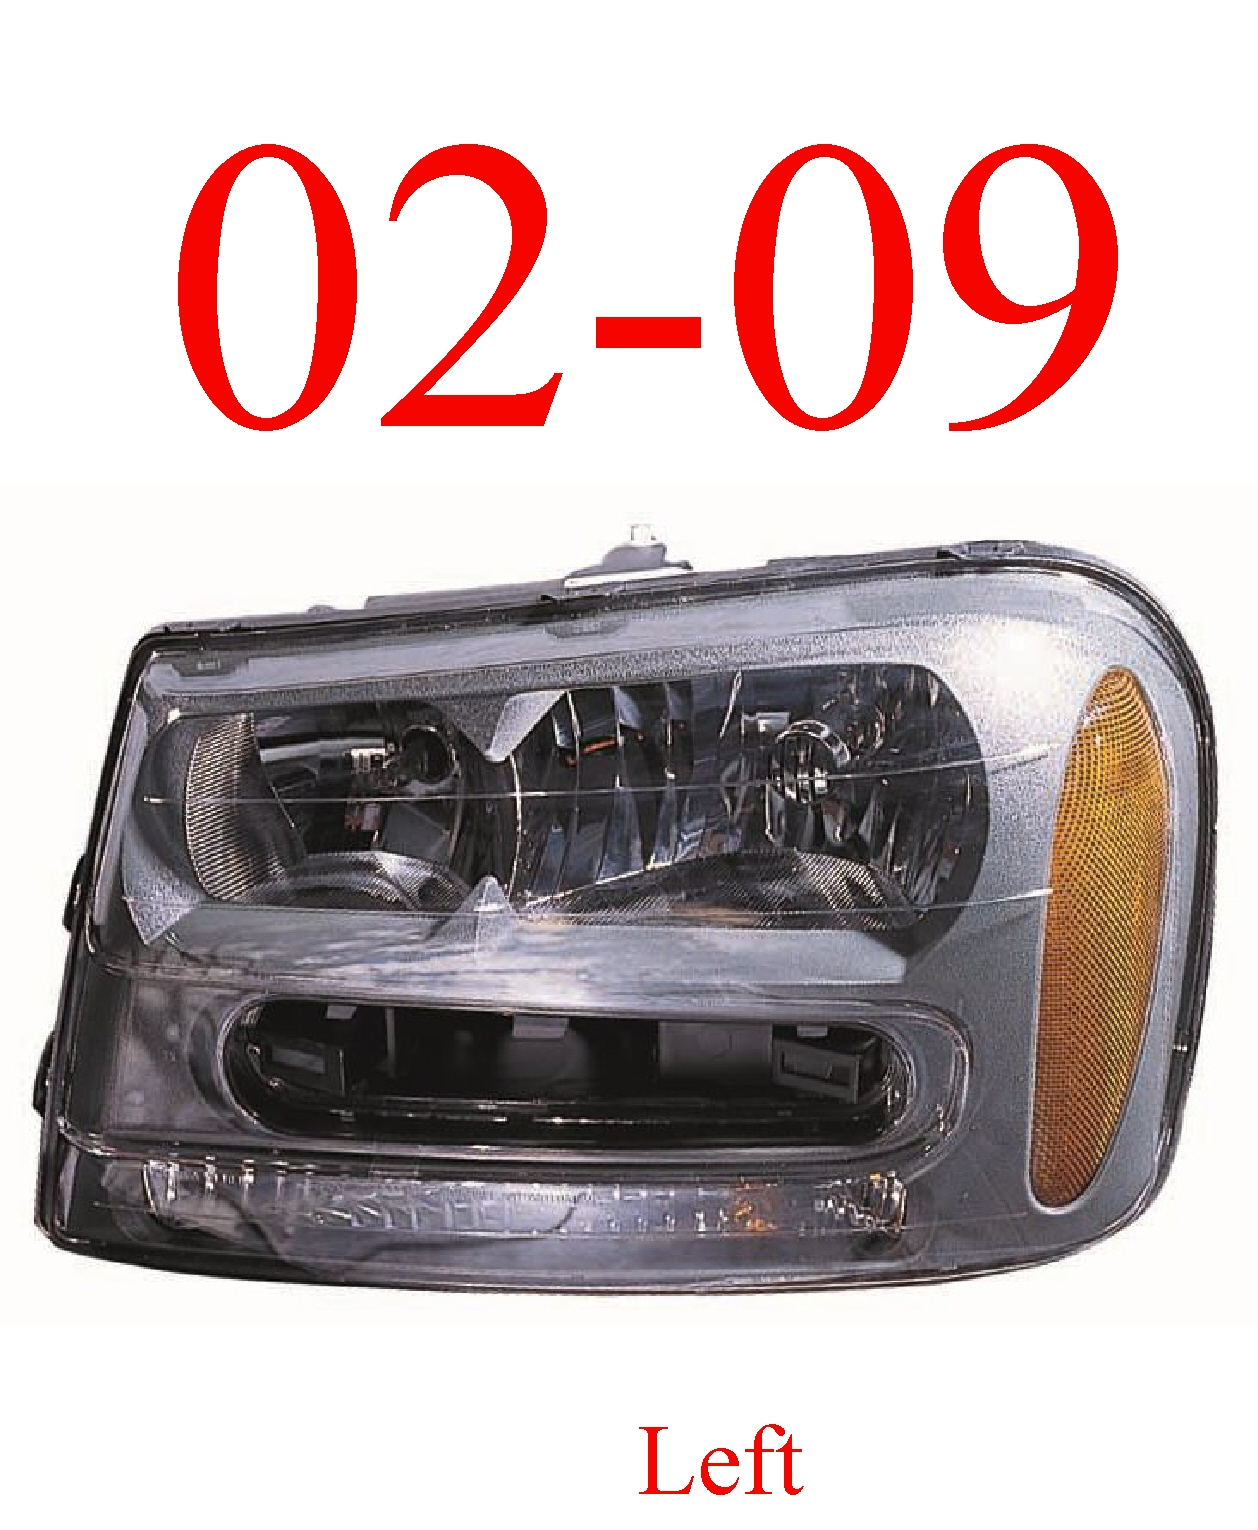 02-09 Trailblazer Left Head Light Assembly